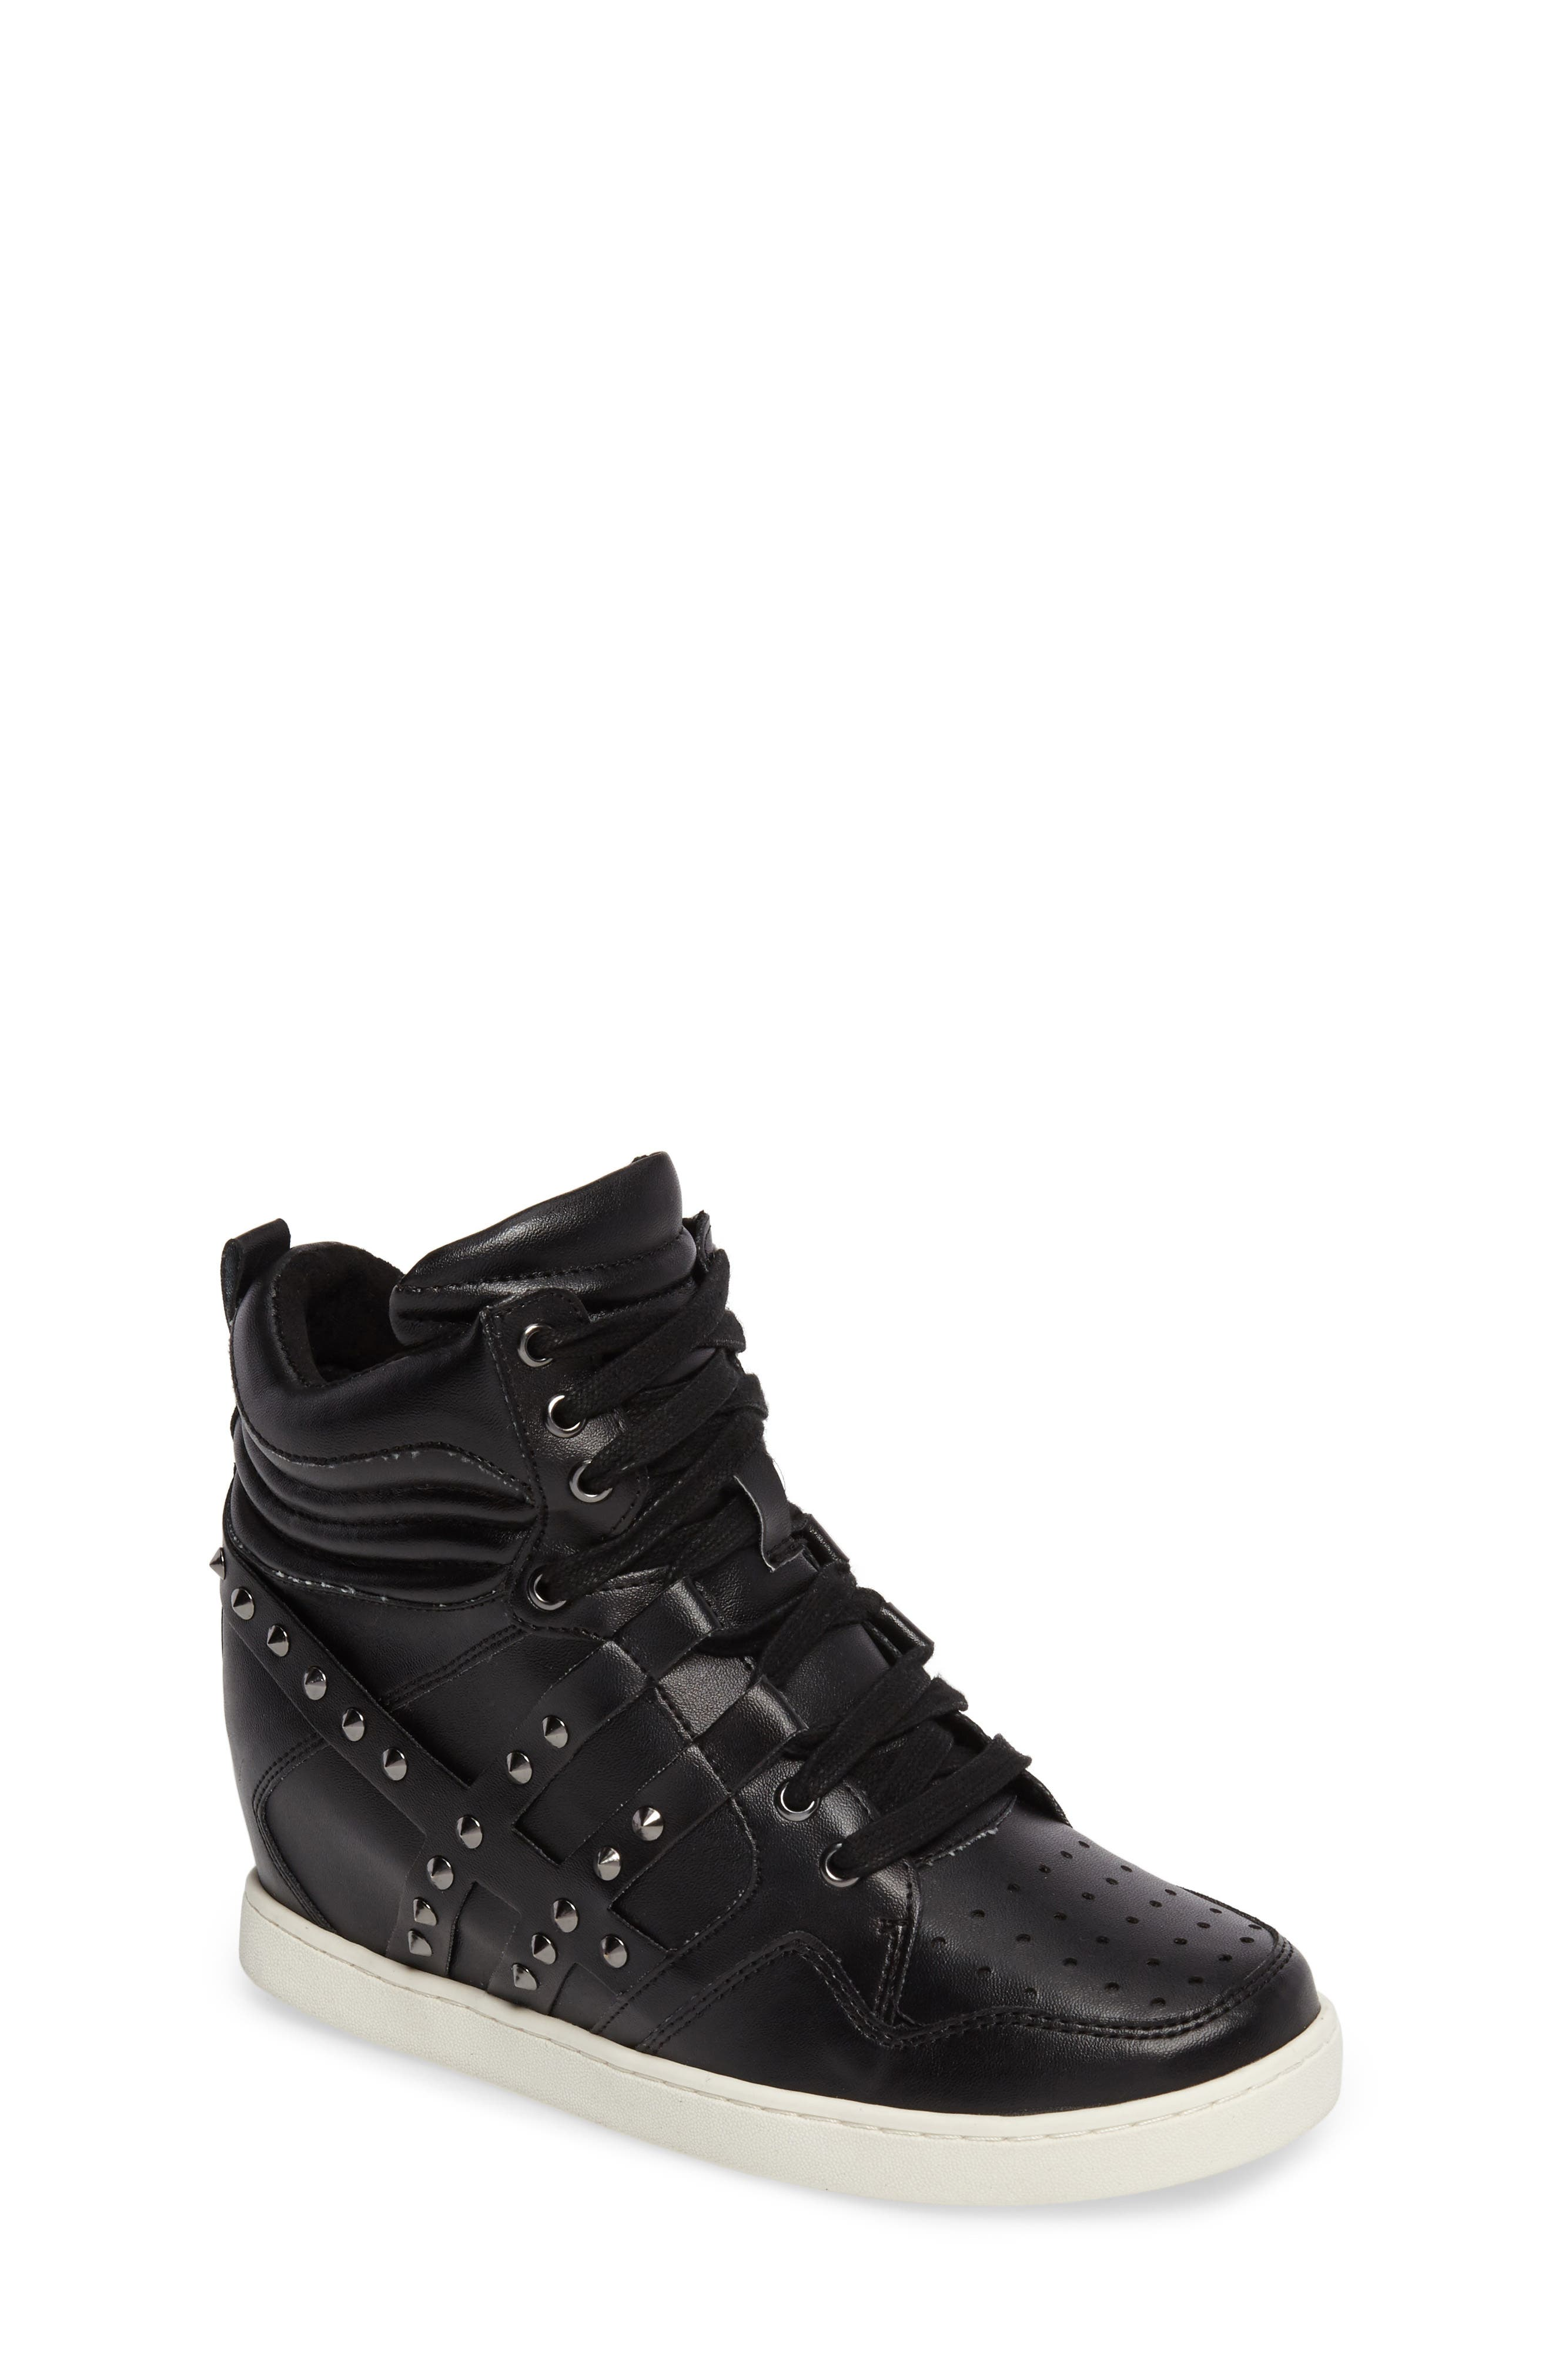 Boogie Chic Studded High Top Sneaker,                         Main,                         color, 001